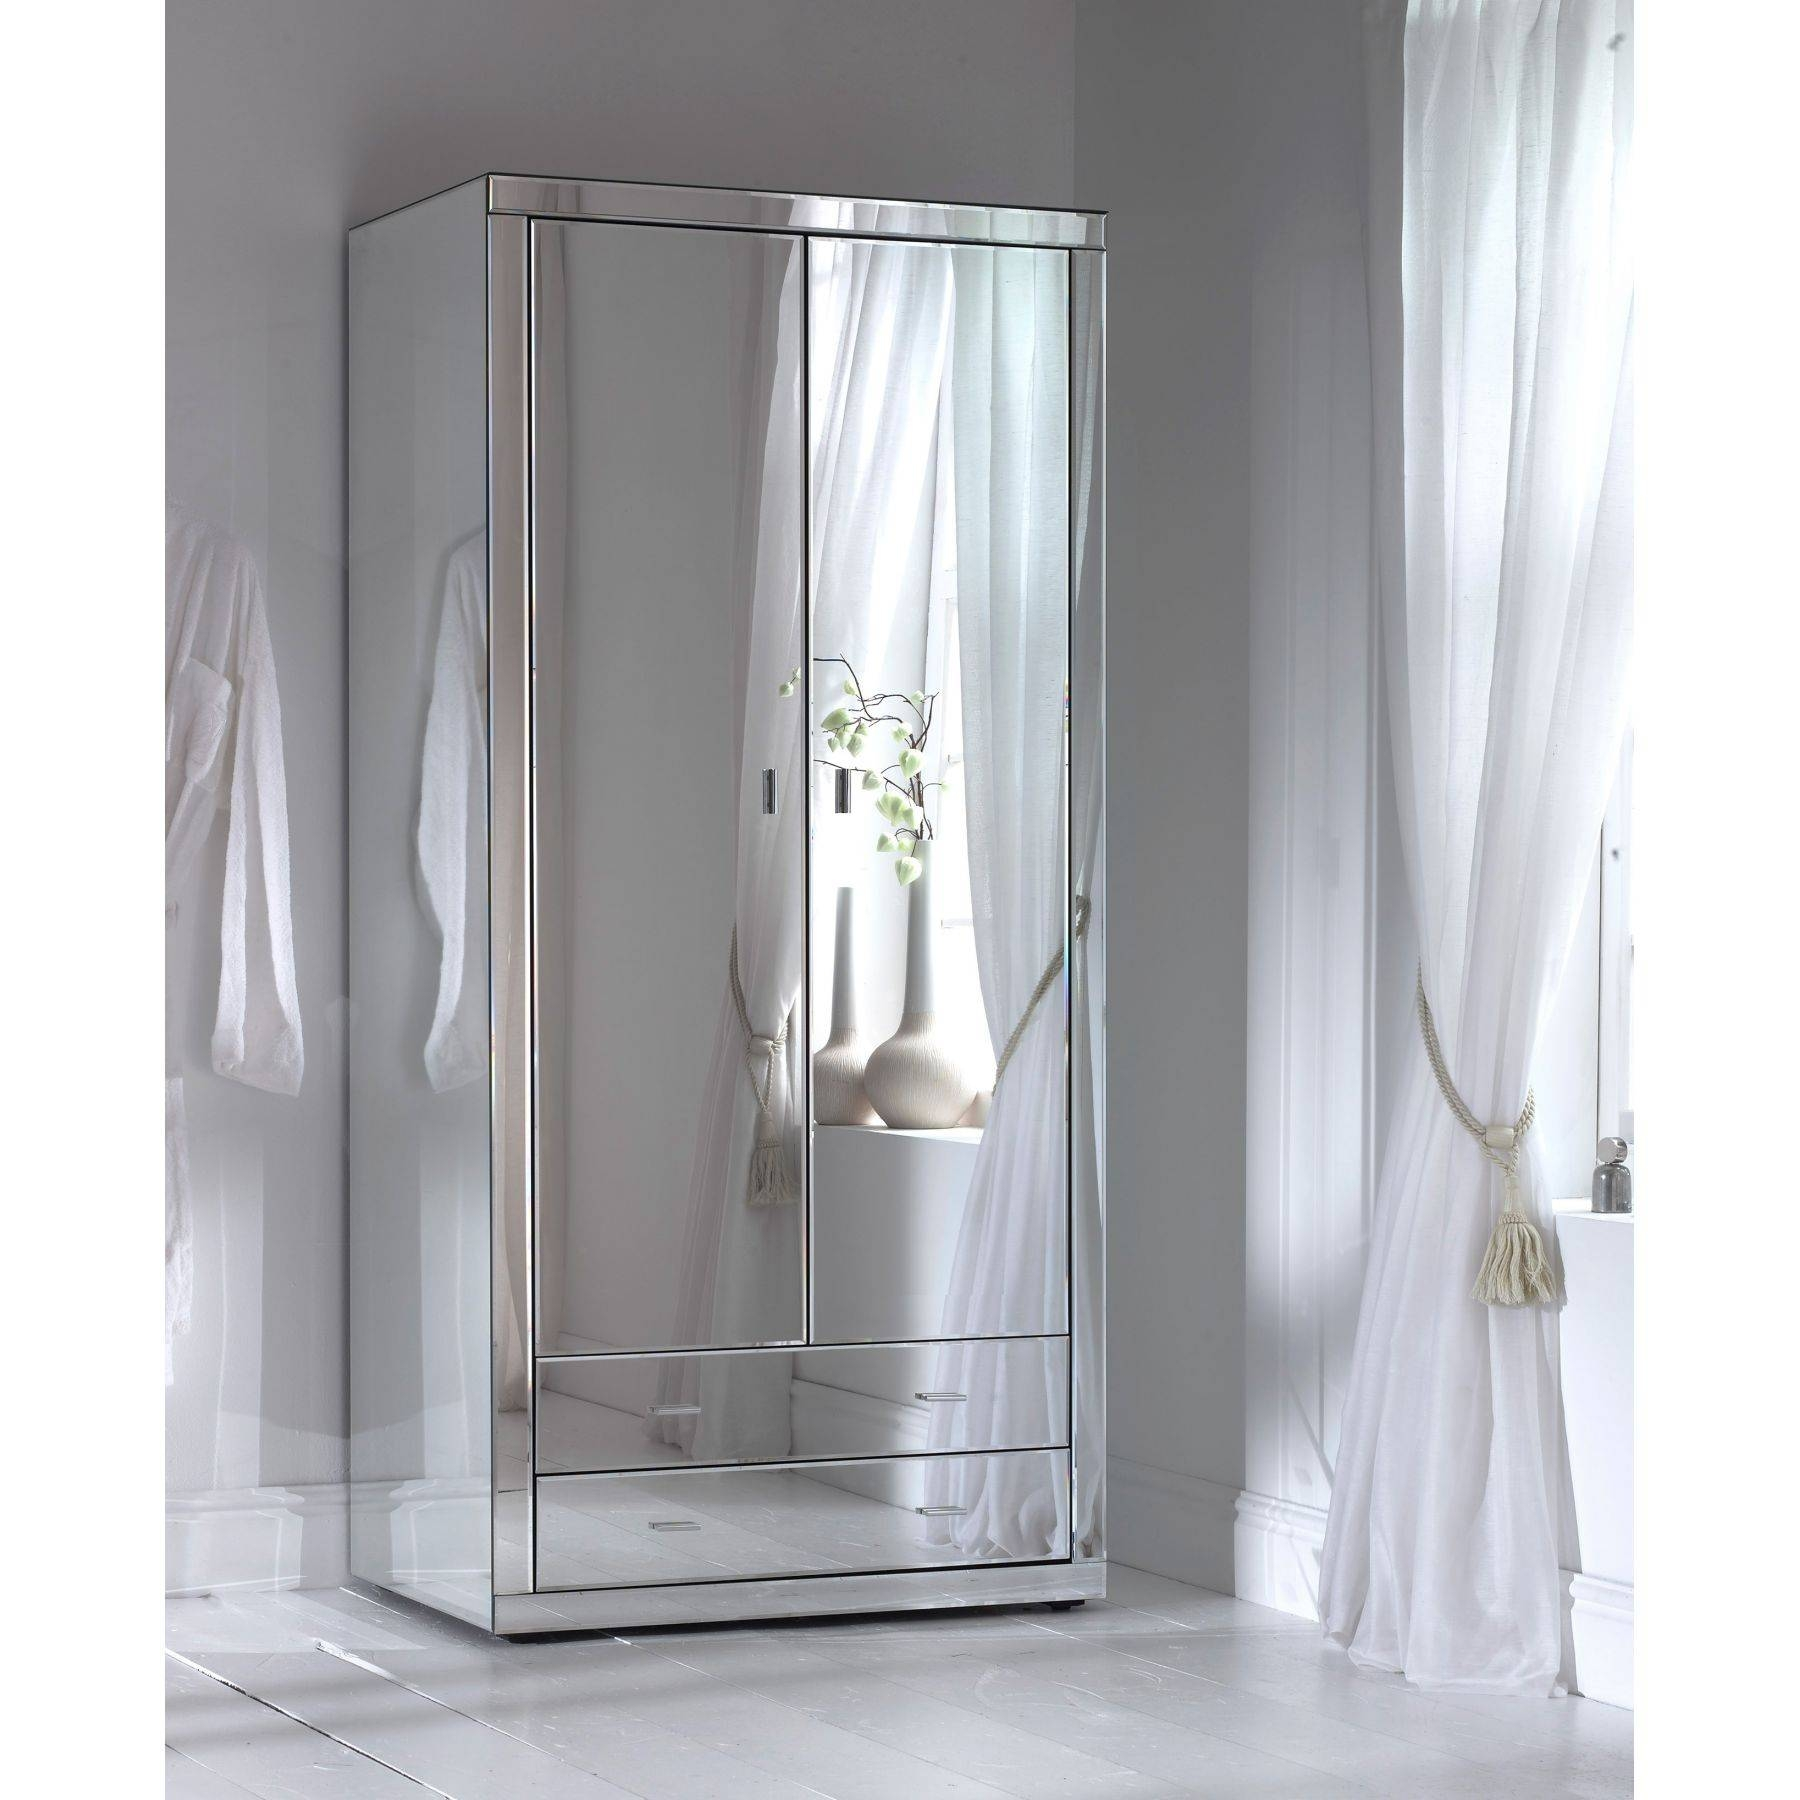 How To Build A Mirrored Wardrobe Pertaining To Corner Mirrored Wardrobes (View 6 of 15)